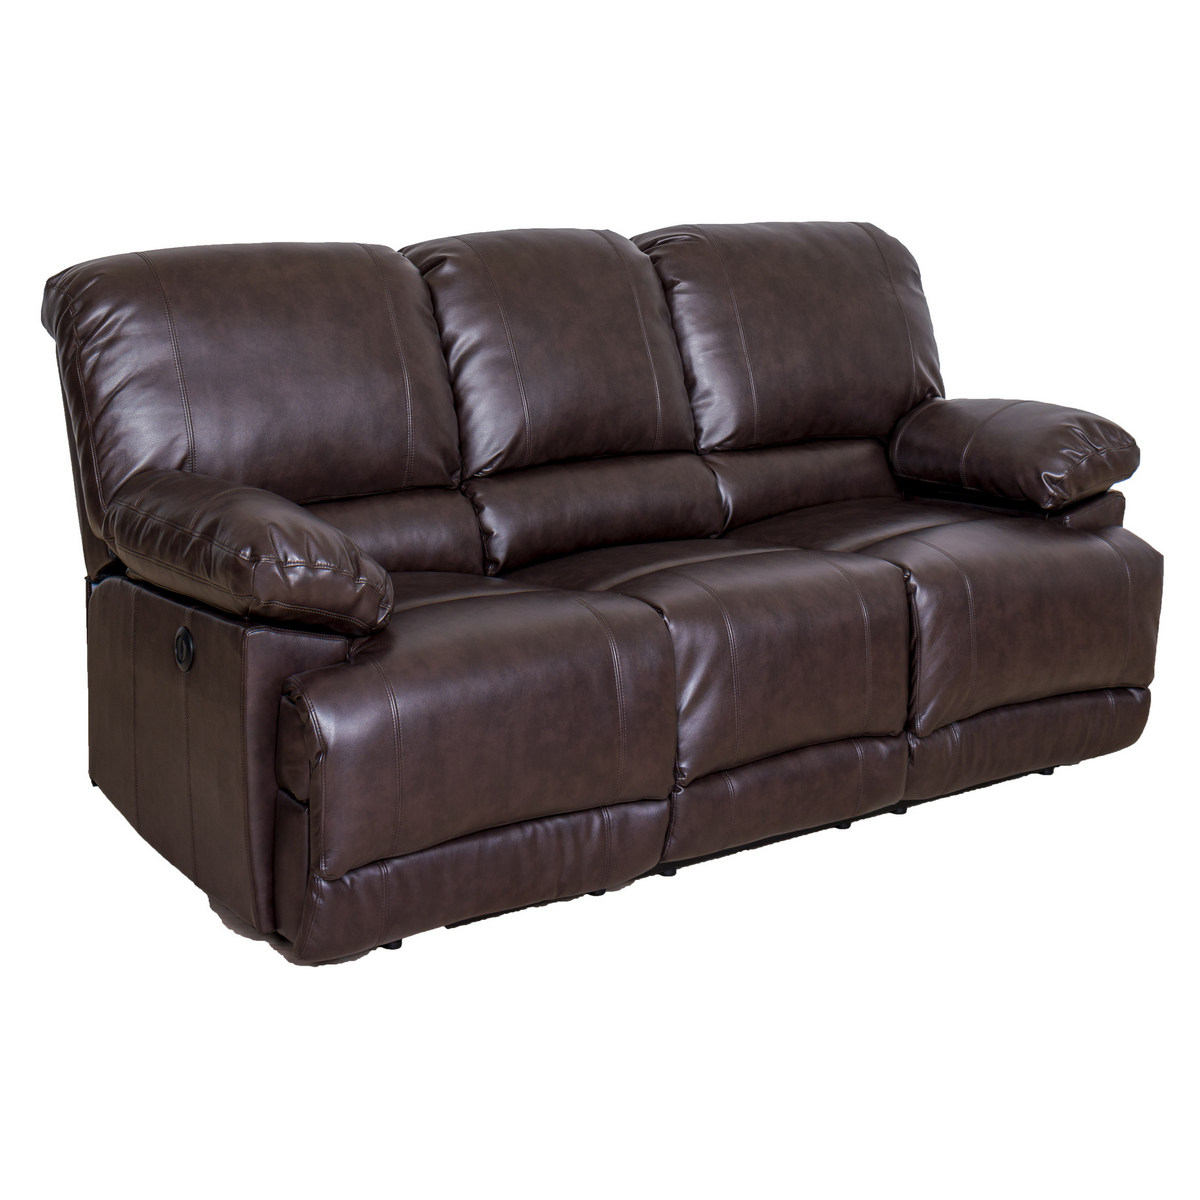 Corliving Lea Chocolate Brown Bonded Leather Power Reclining Sofa Usb Port